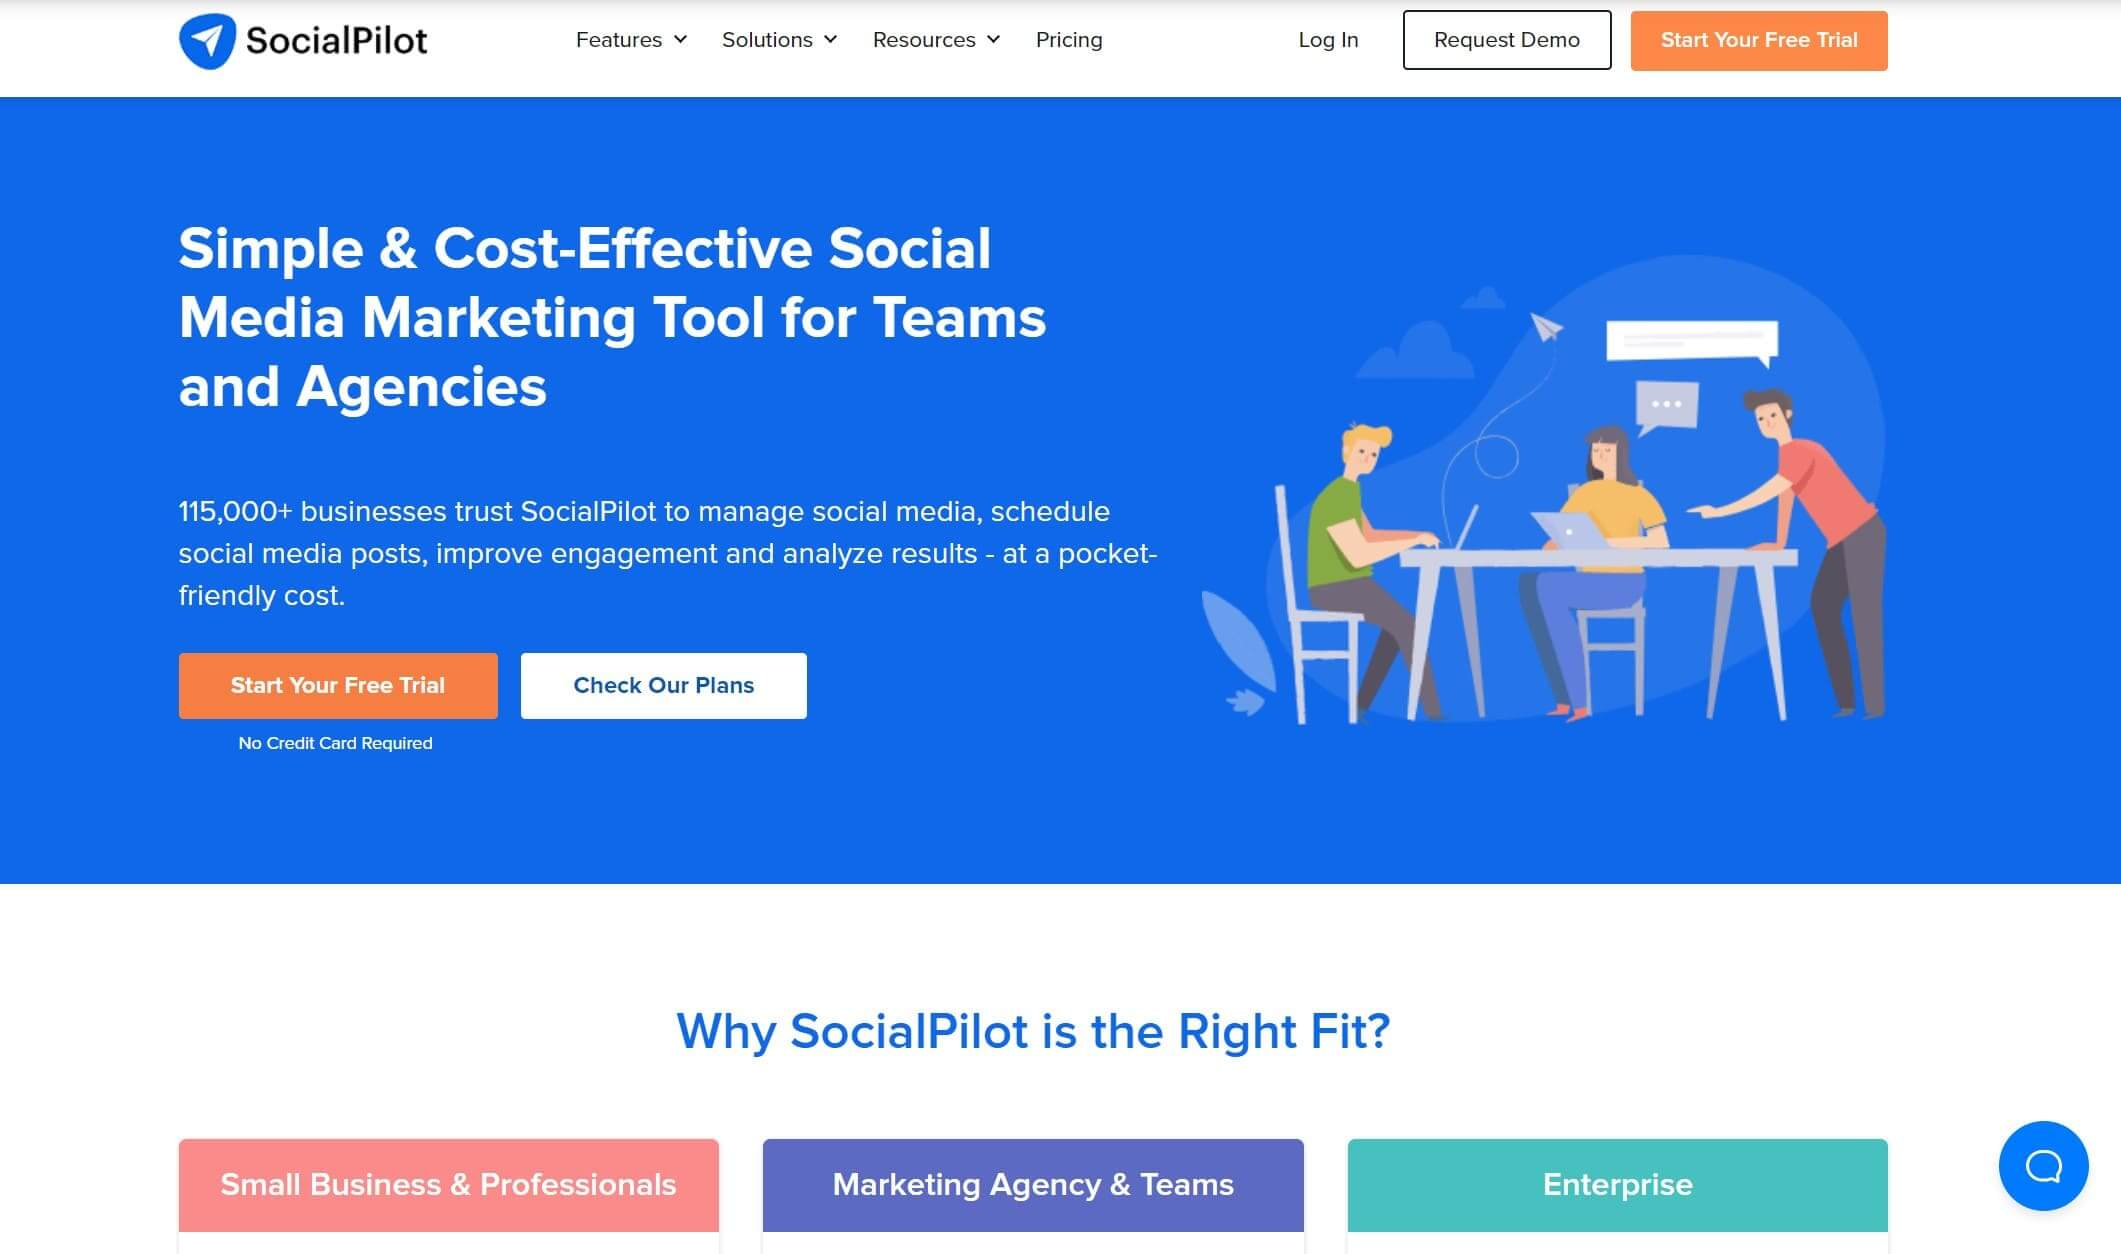 SocialPilot's website